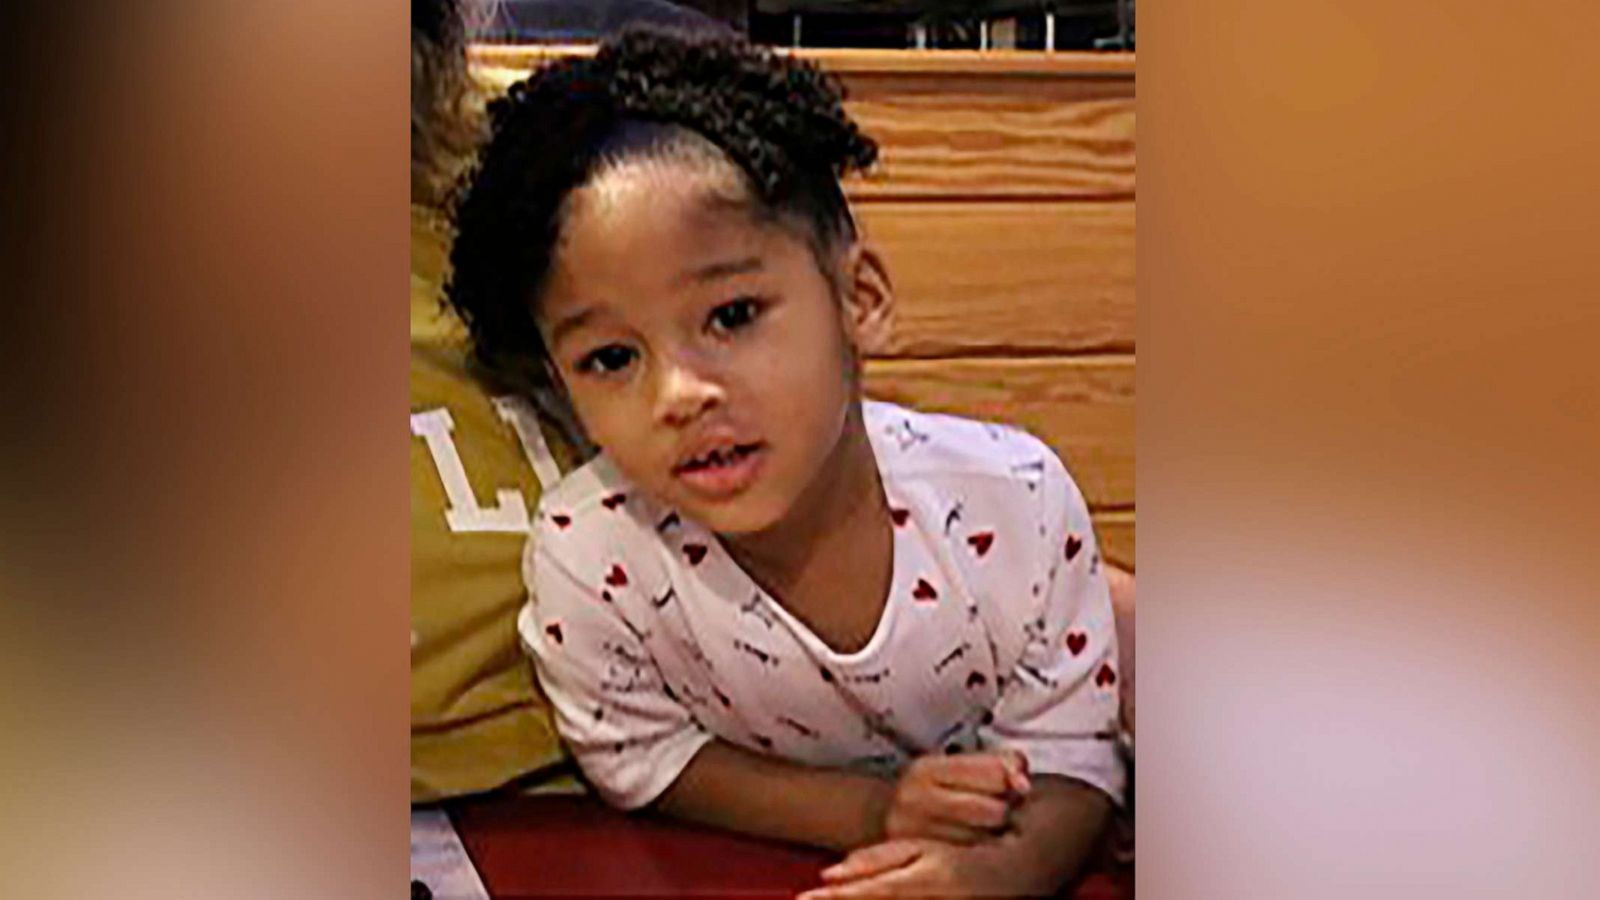 Family car of missing 4-year-old Texas girl Maleah Davis located: Police - ABC News